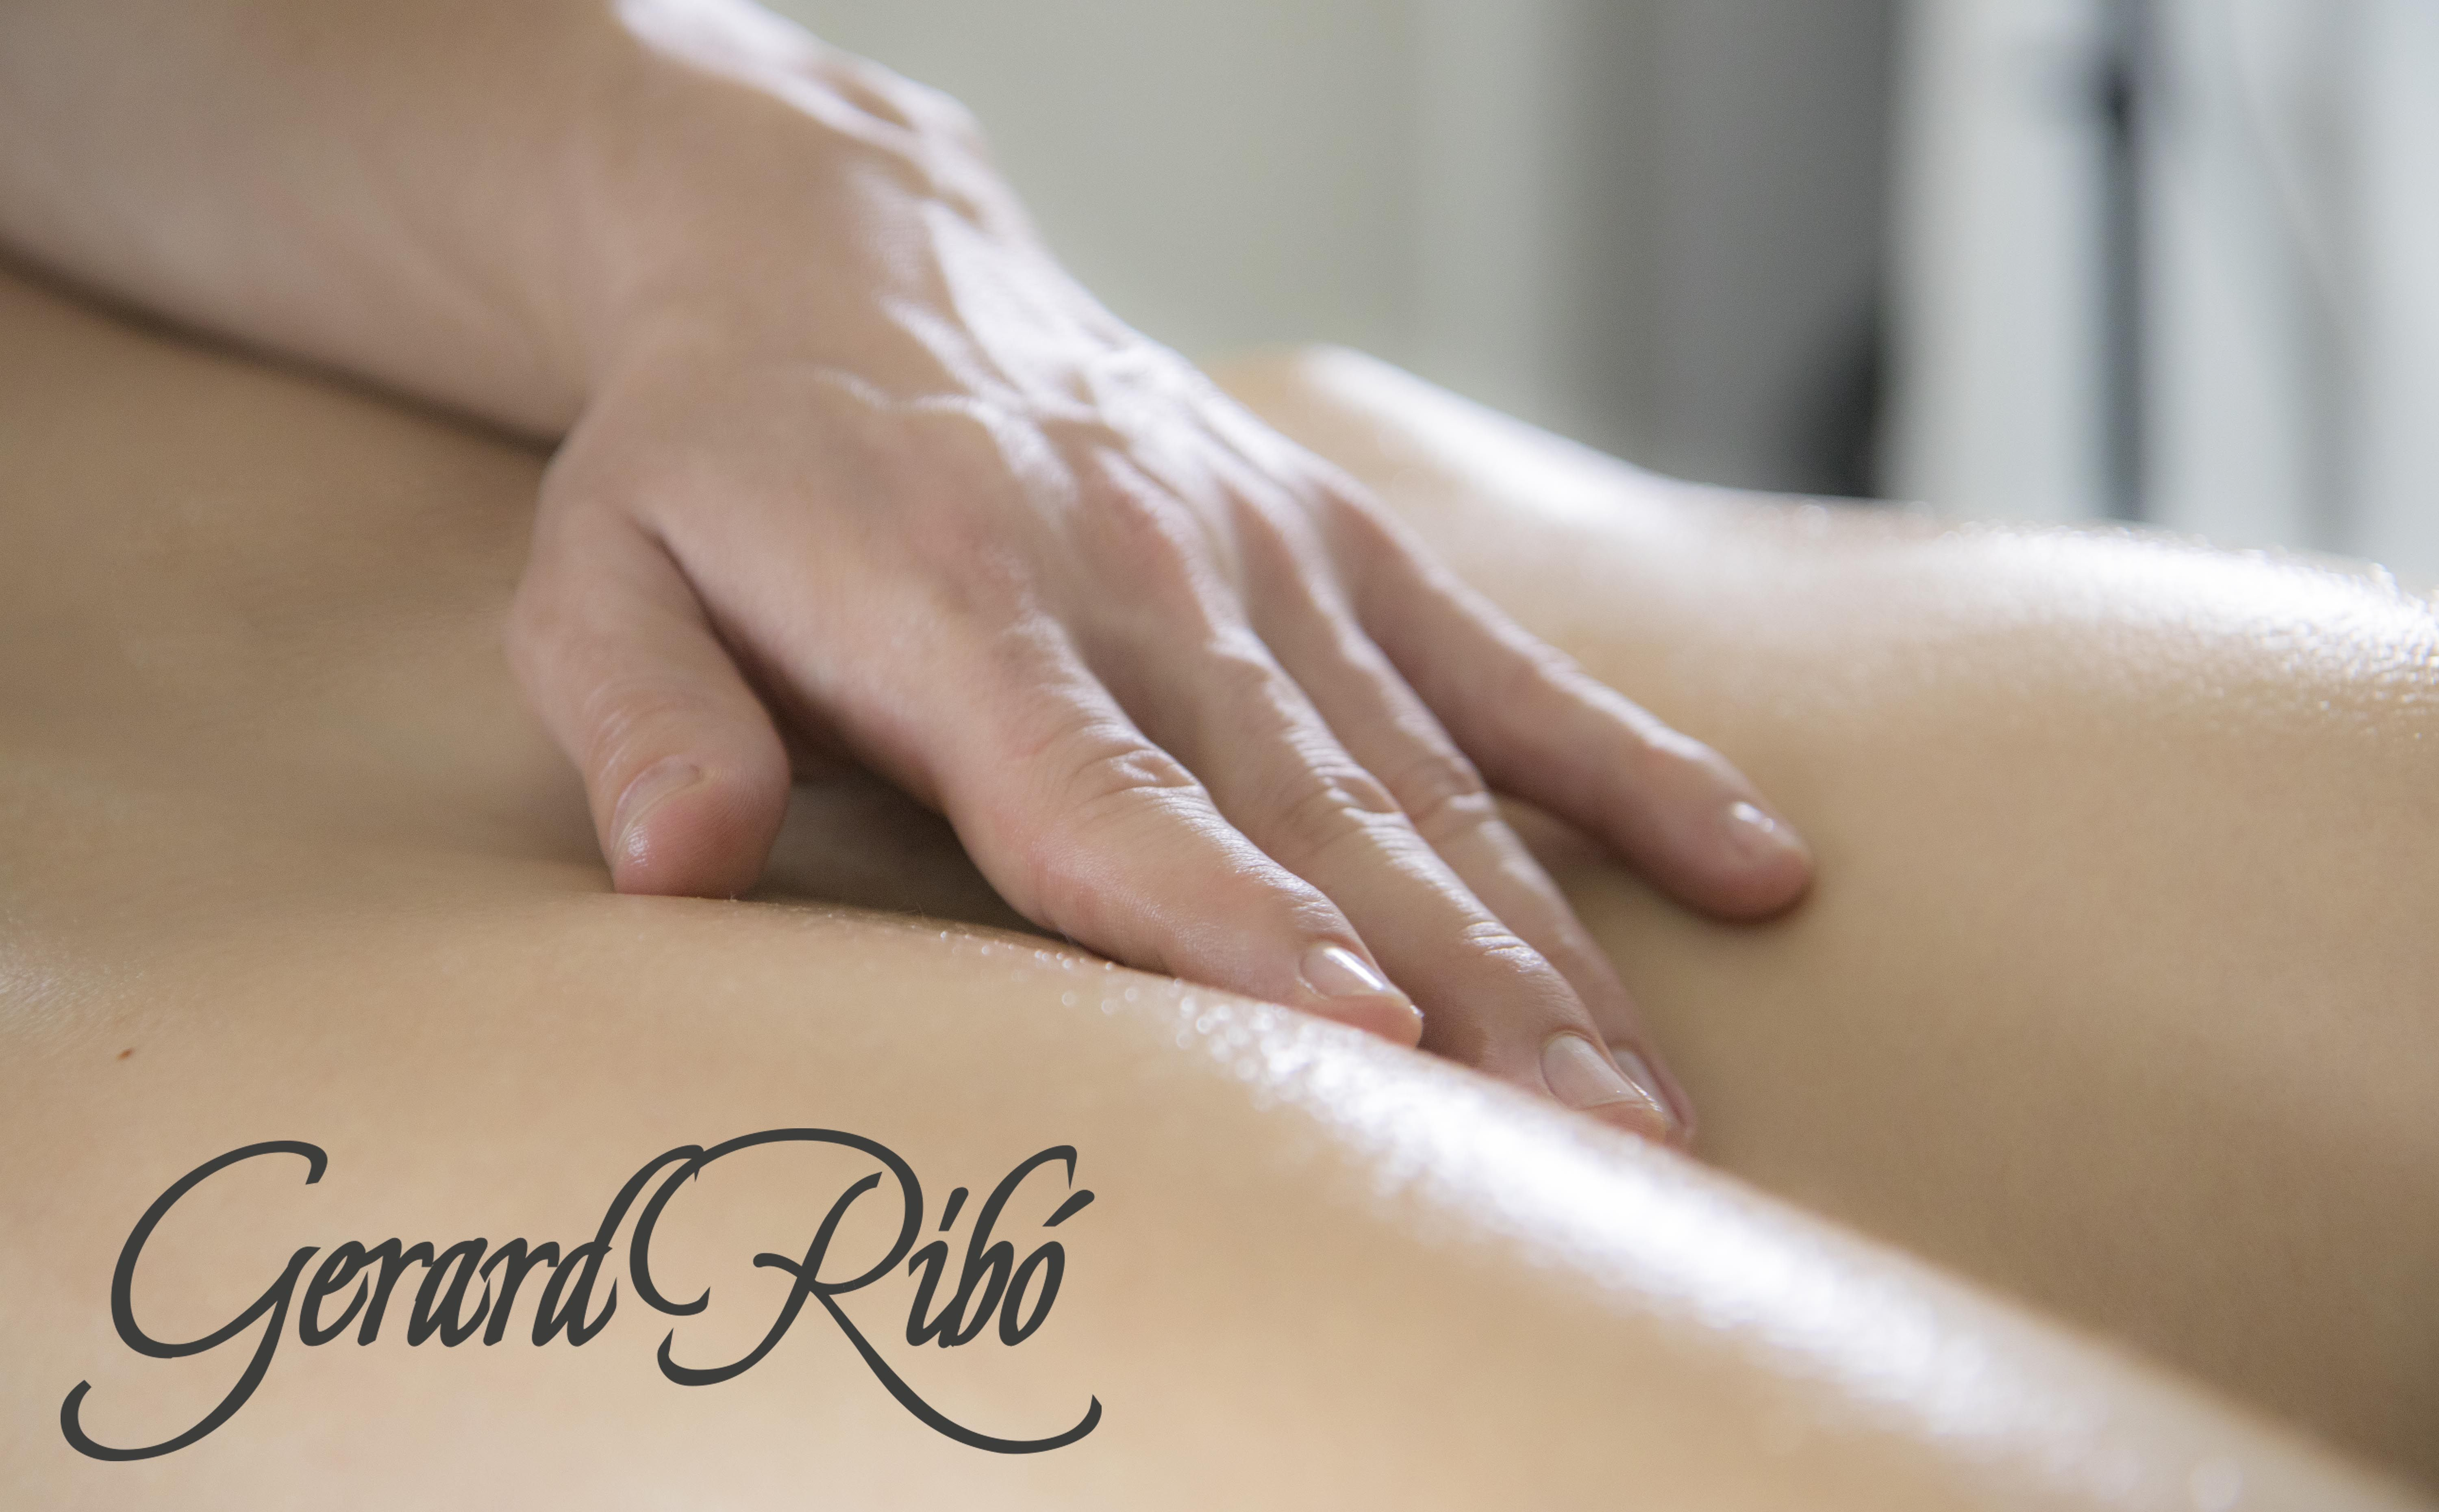 Erotic Massage For Women Sensual Massage For Women Male Masseur London Sexual Dissatisfaction And General Dissatisfaction With Your Life